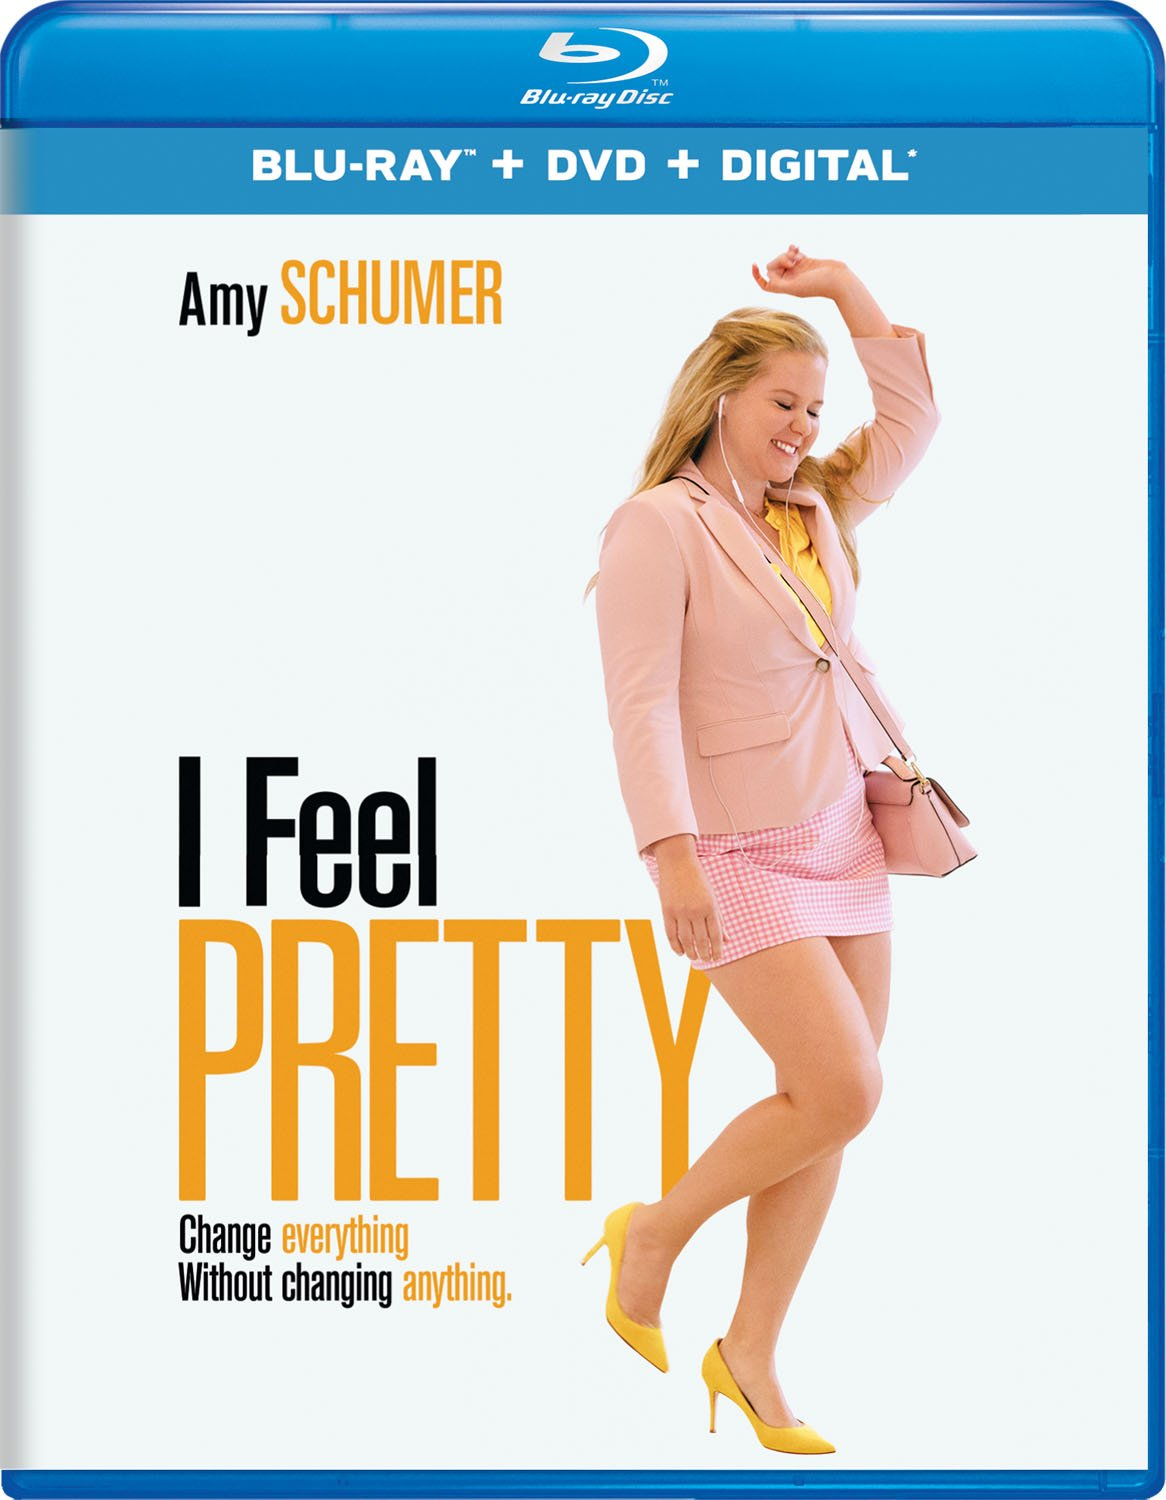 Blu-ray : I Feel Pretty (With DVD, 2 Pack, Digital Copy, 2PC)